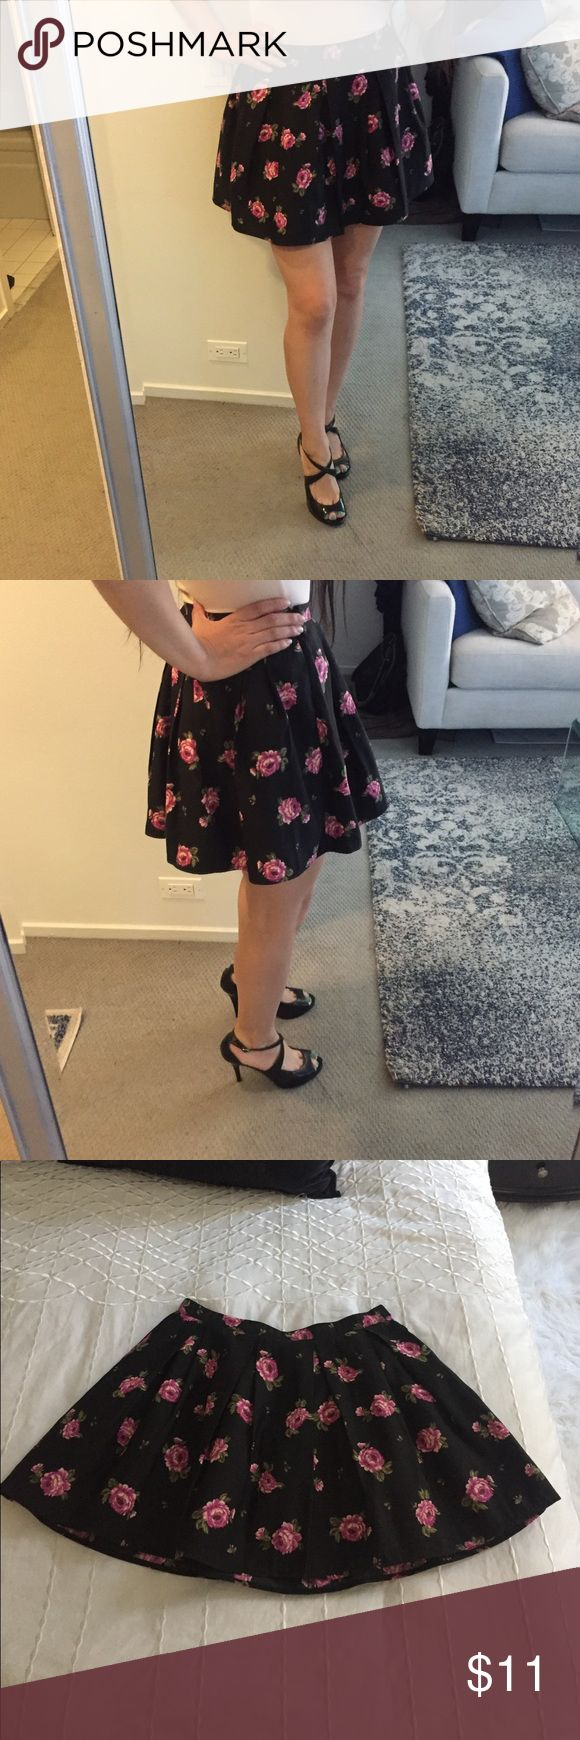 Forever 21 floral skirt Great condition, beautiful black skirt with vibrant roses. This skirt is lined. The material remind me of  finer grosgrain ribbon. This is one of my favorite skirts to wear. Shoes also for sale. Forever 21 Skirts